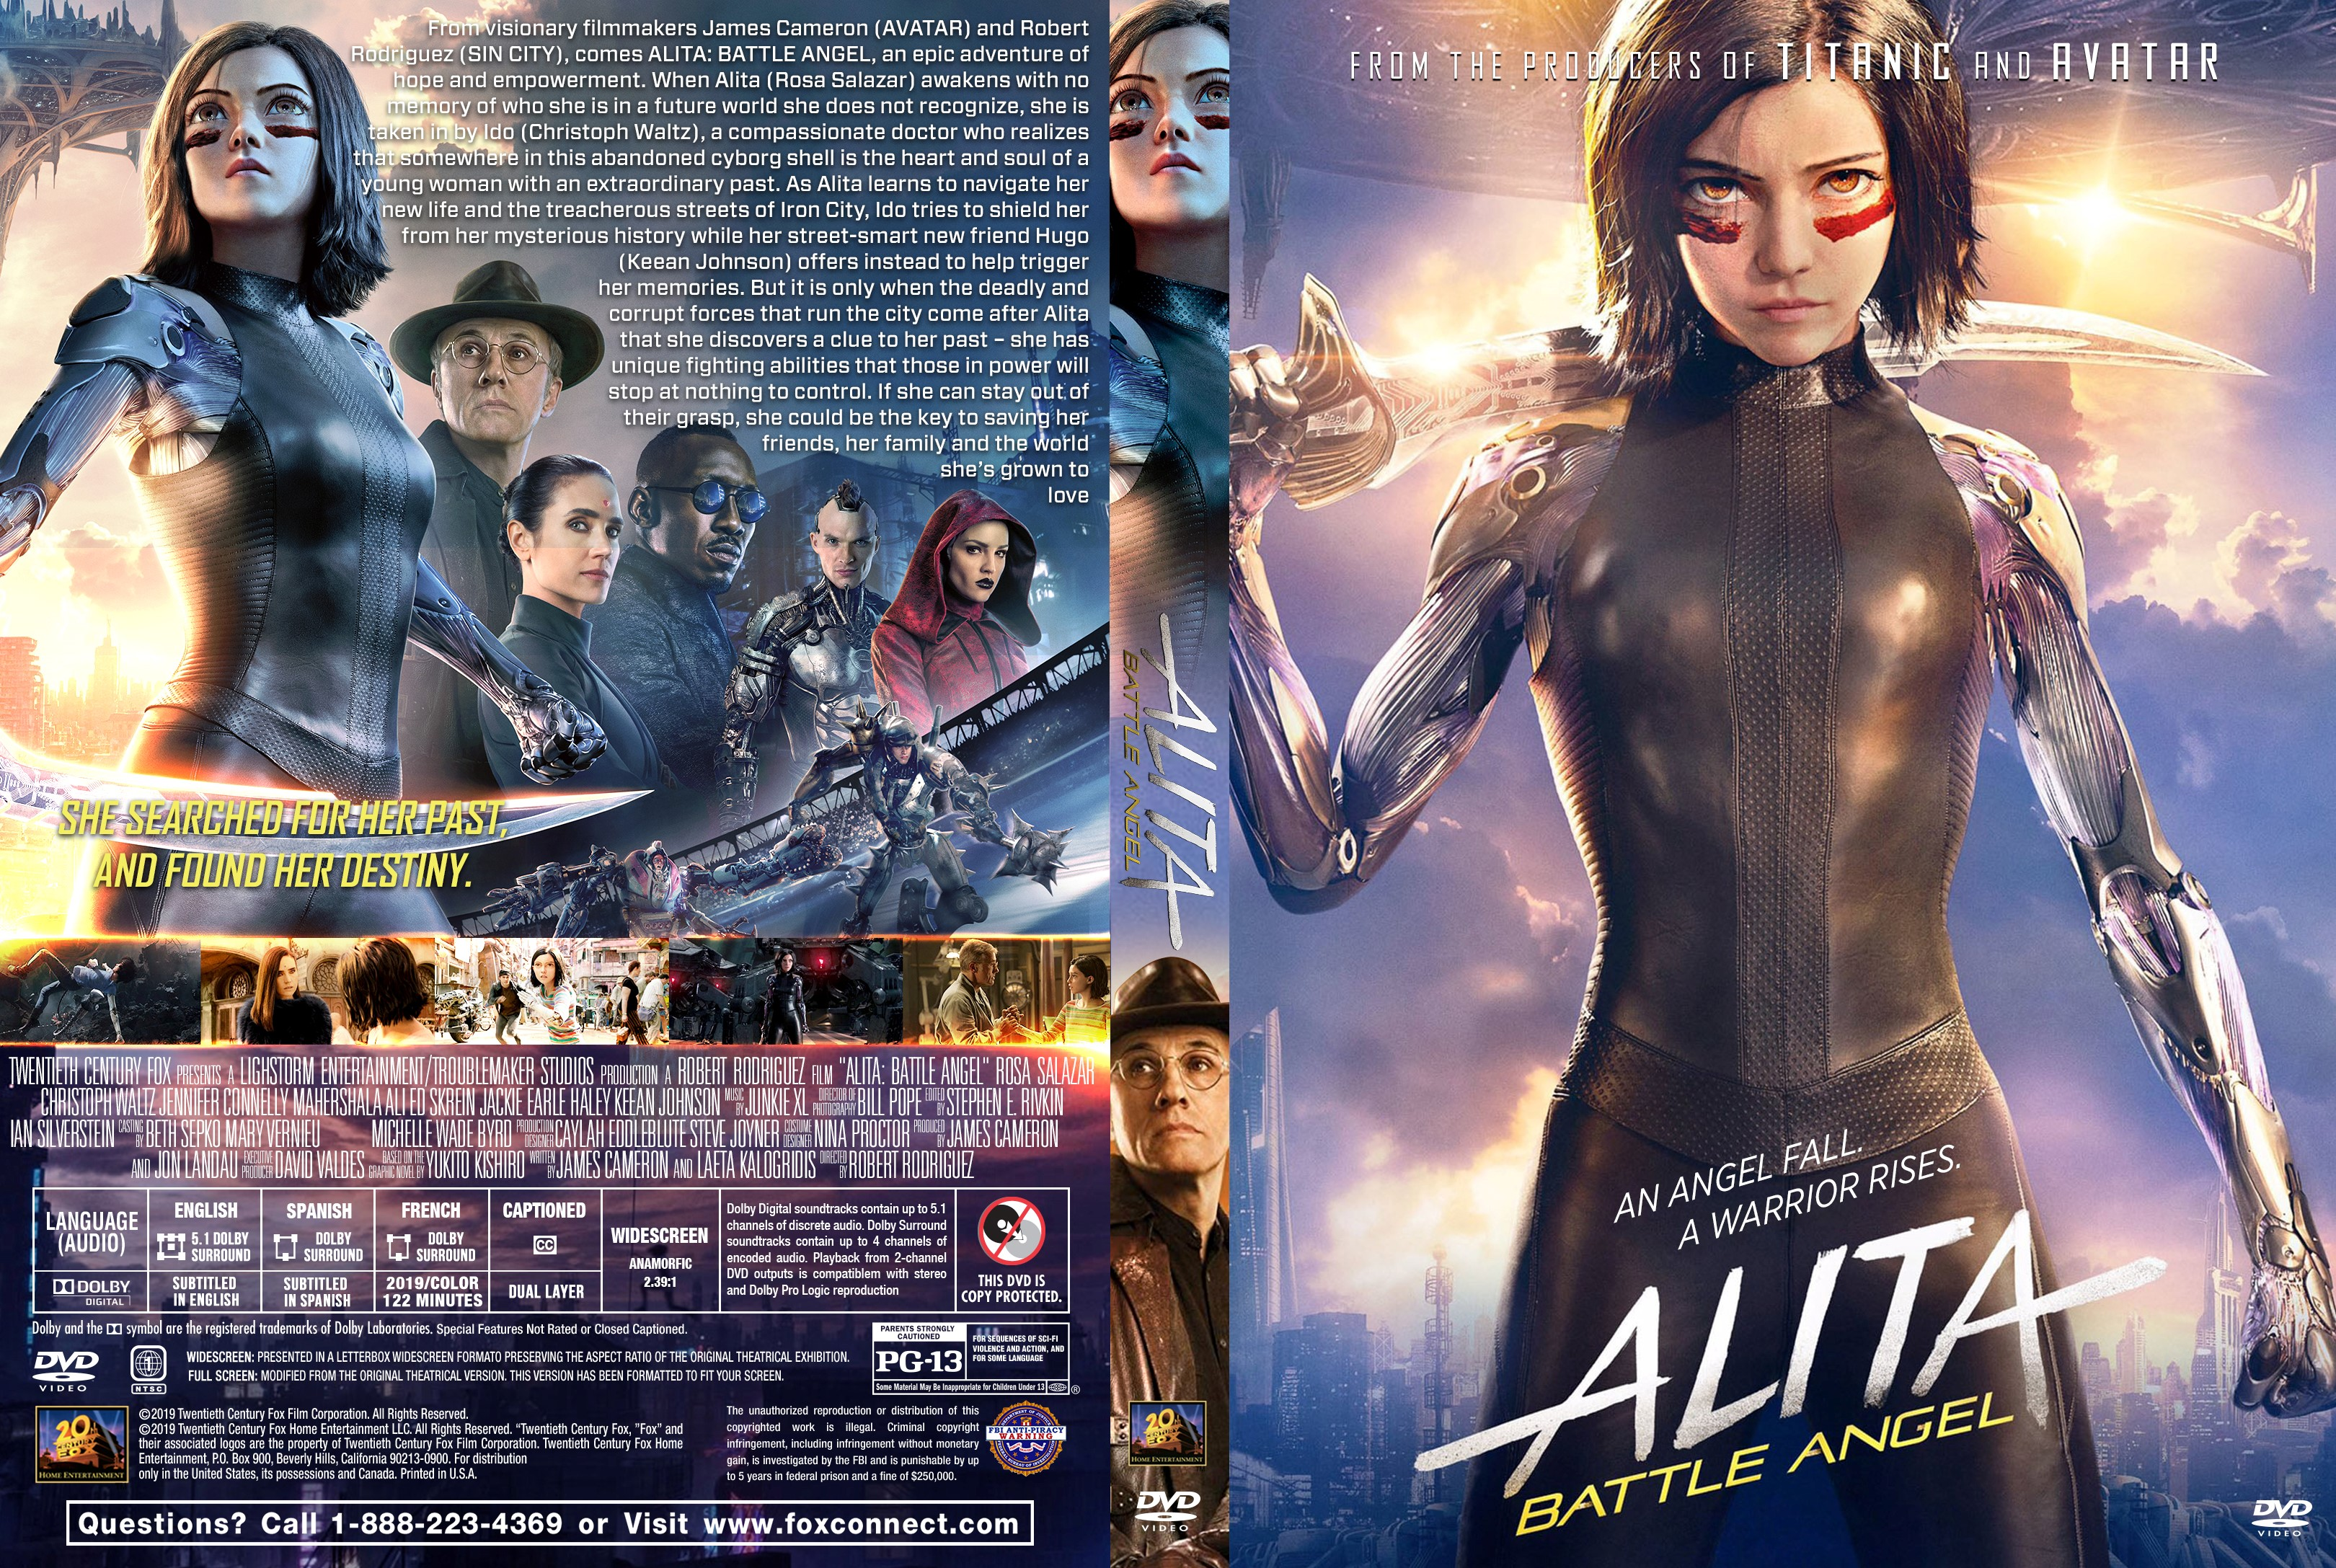 Alita Battle Angel Dvd Cover Cover Addict Free Dvd Bluray Covers And Movie Posters